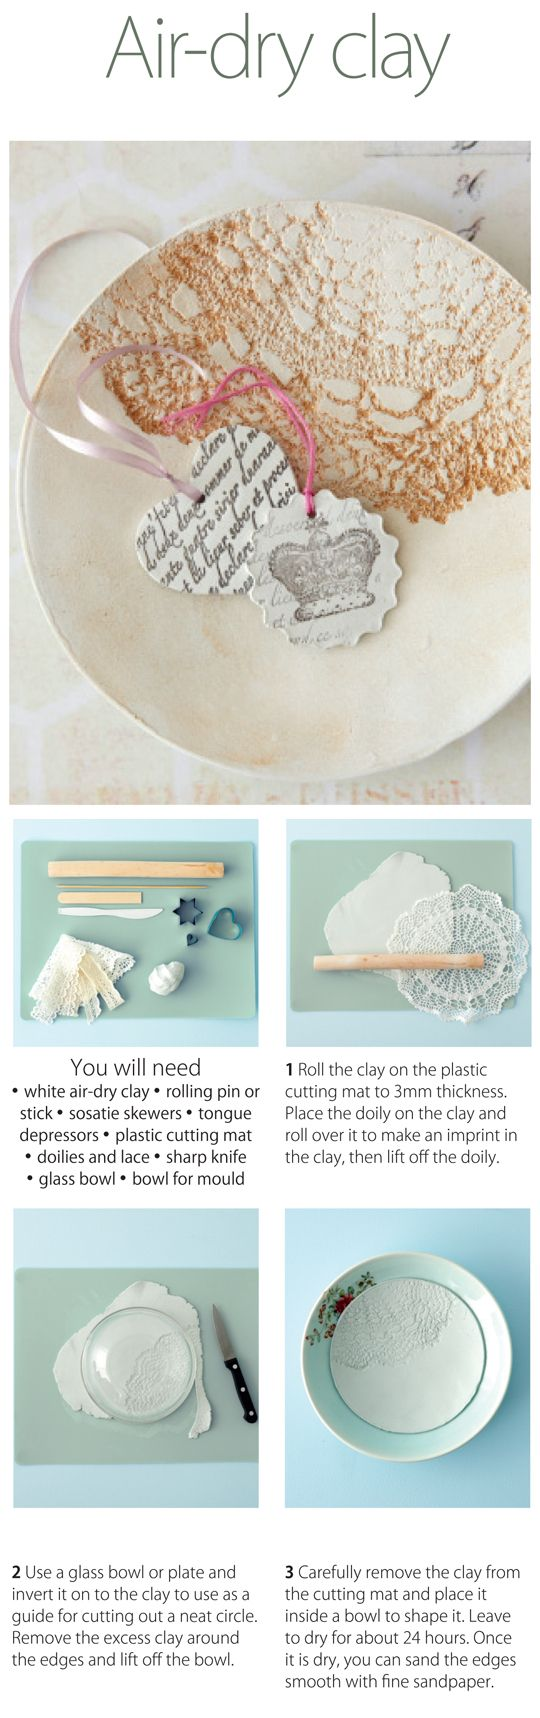 Air-dry clay: The technique